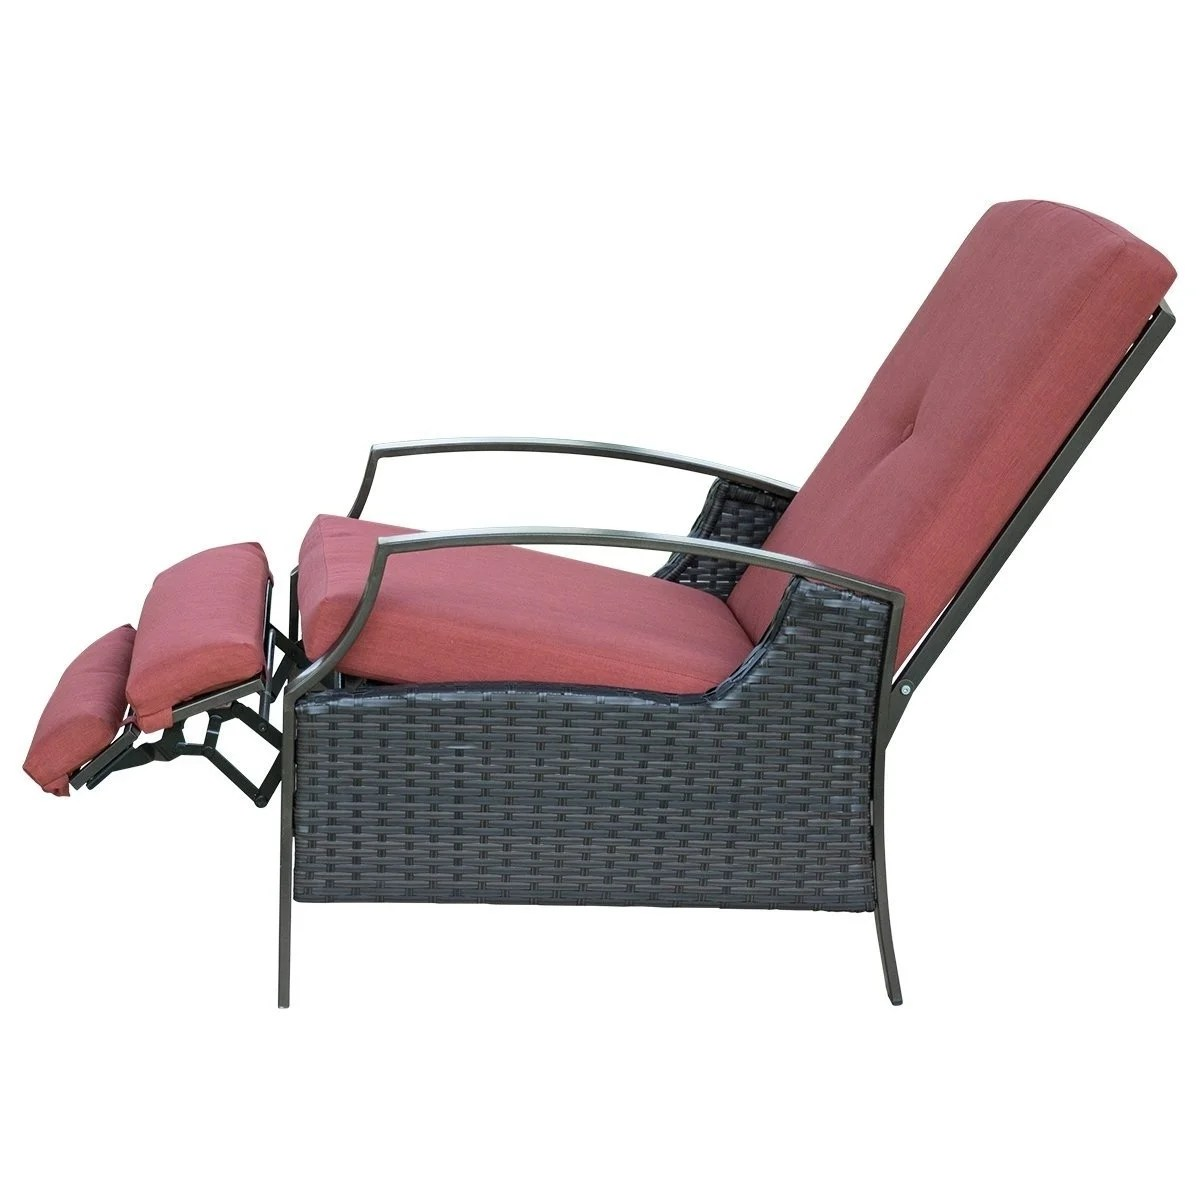 Shop SunLife Recliner Chair  Adjustable Patio Bistro Garden Party     Shop SunLife Recliner Chair  Adjustable Patio Bistro Garden Party Bars Cafe Indoor  Outdoor Wicker Relaxing Lounge with Thick Cushion   Free Shipping Today